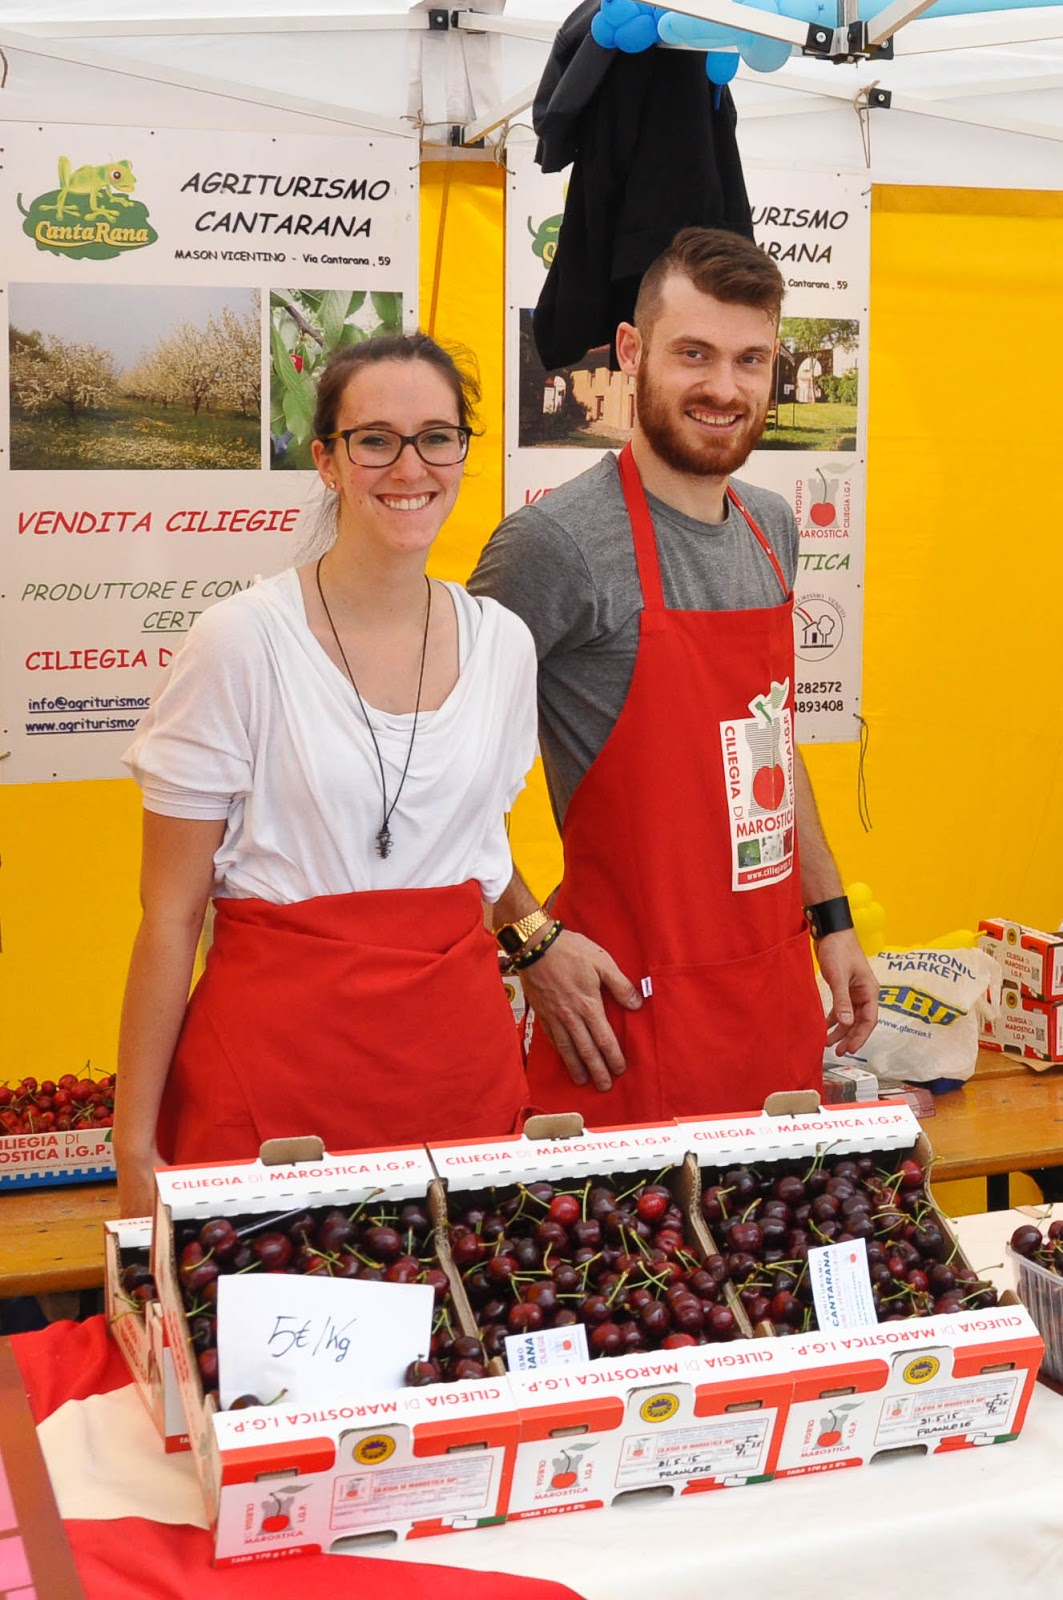 Agriturismo Cantarina at the Cherry Show Market in Marostica, Veneto, Italy